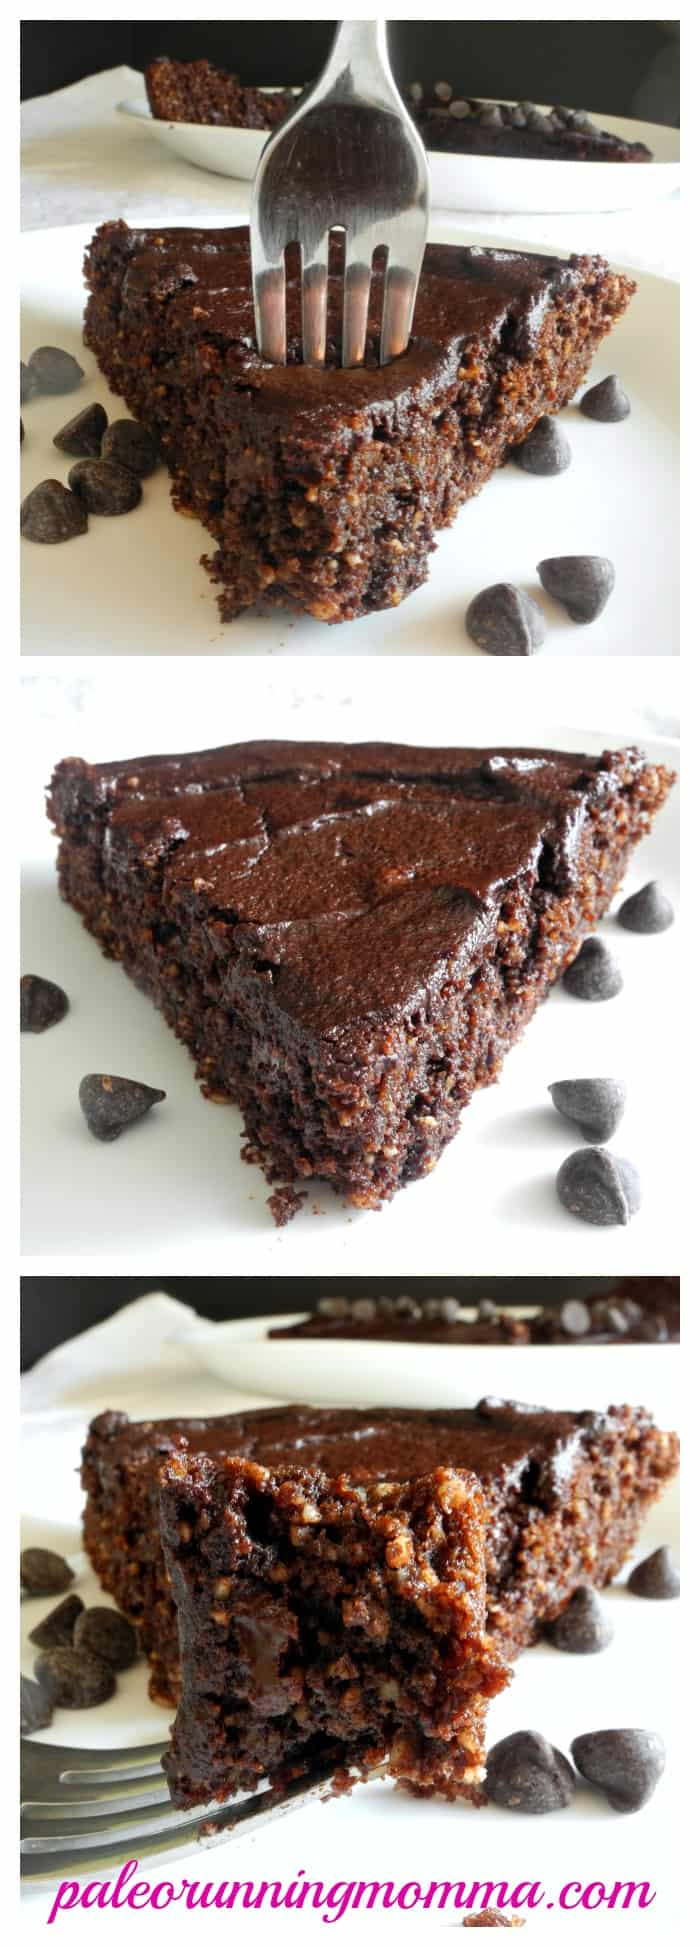 Gooey Fudge Brownie Pie #glutenfree #grainfree #paleo #dairyfree